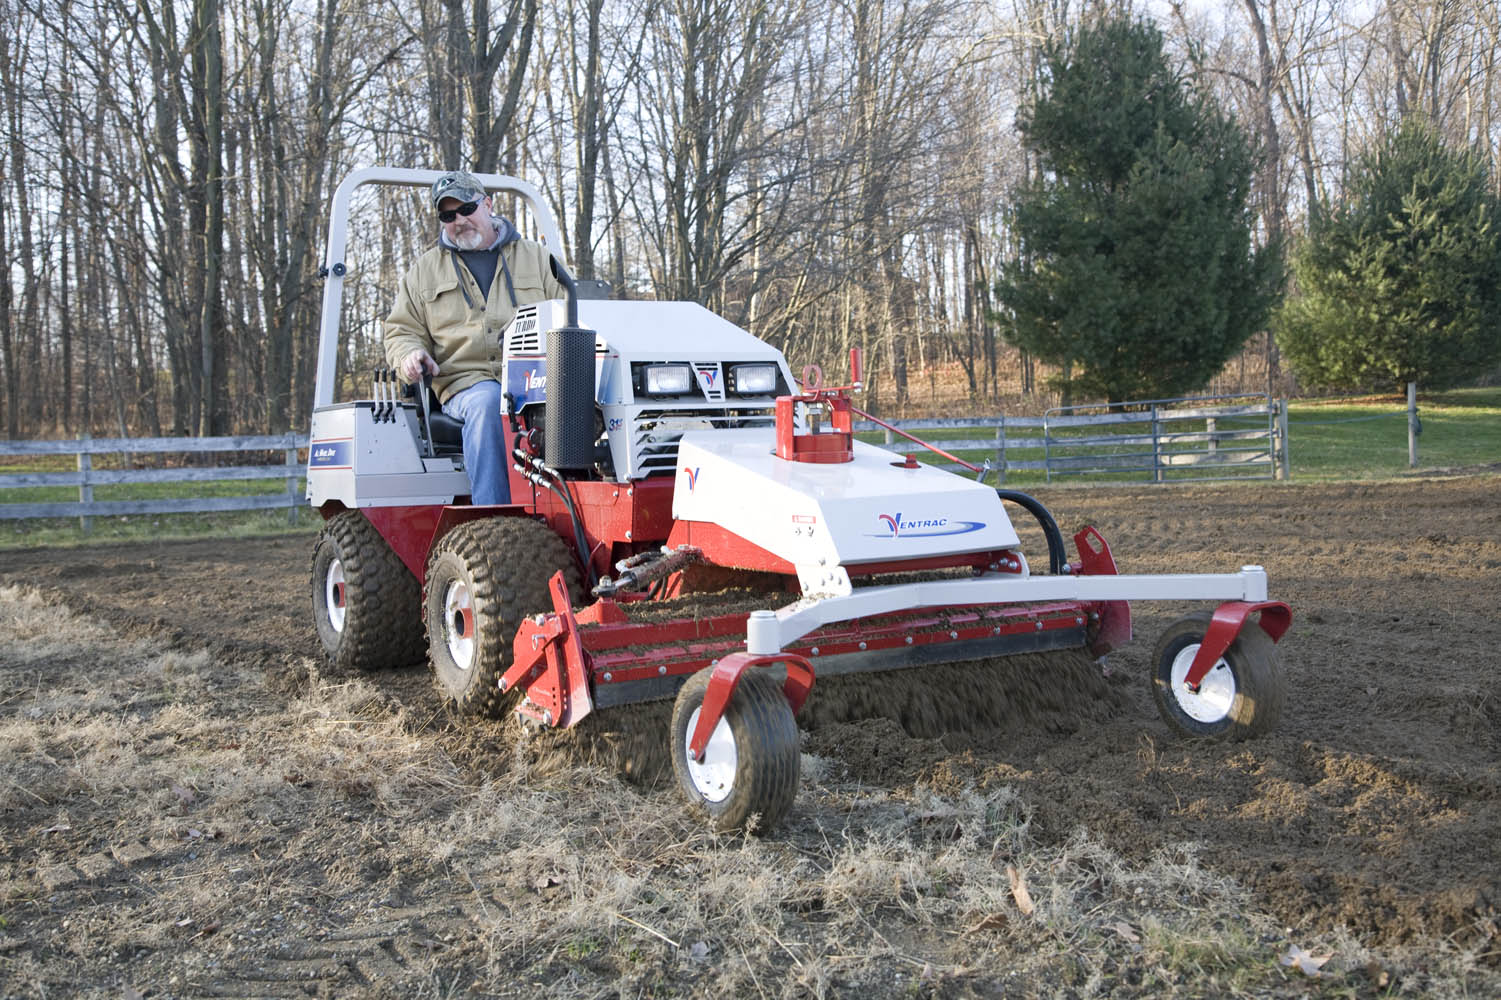 Power Rake attachment and Ventrac Tractor